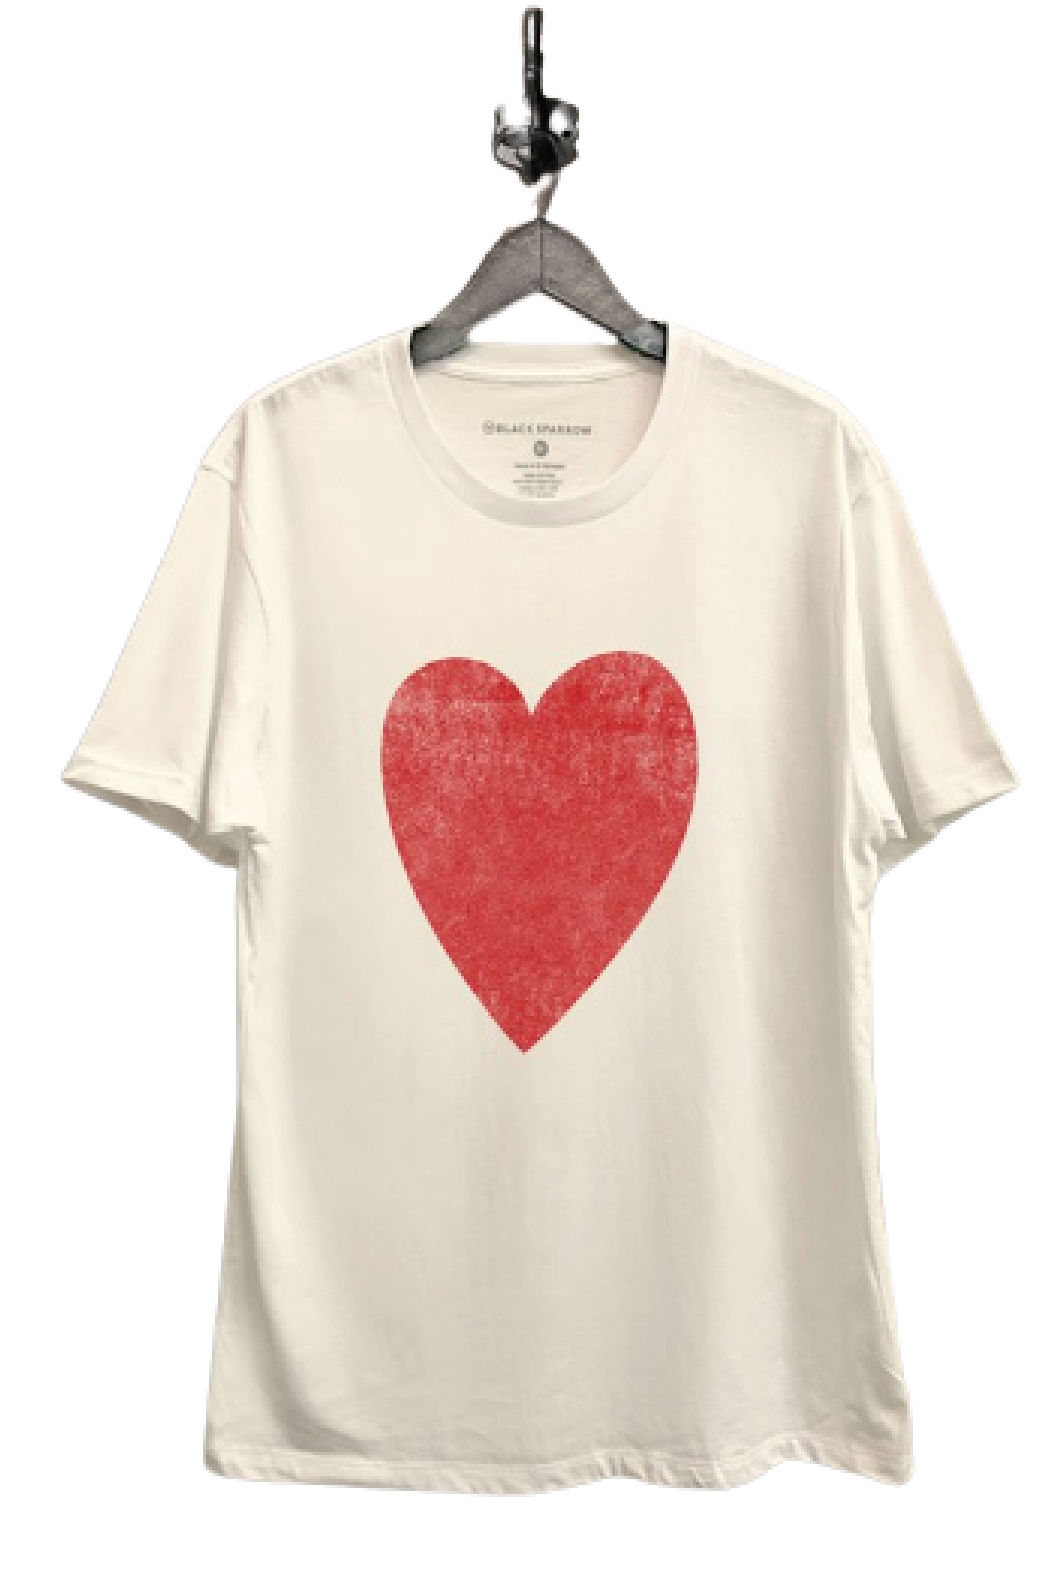 Black Sparrow Big Heart Boyfriend Tee - Front Cropped Image